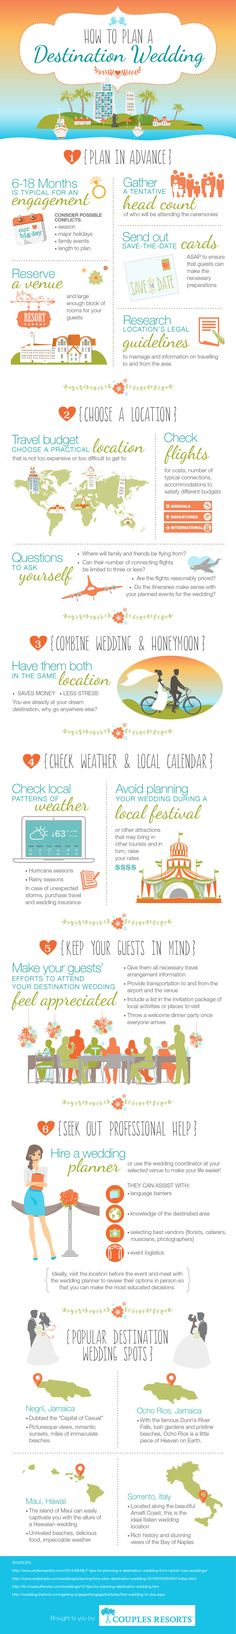 With the weather outside so frightful, we have had destination weddings on our minds a lot. Are you considering a destination wedding? Here are a few things to consider outlined inthis infographic by Couples Resorts, premiere destination wedding resorts in the Caribbean.